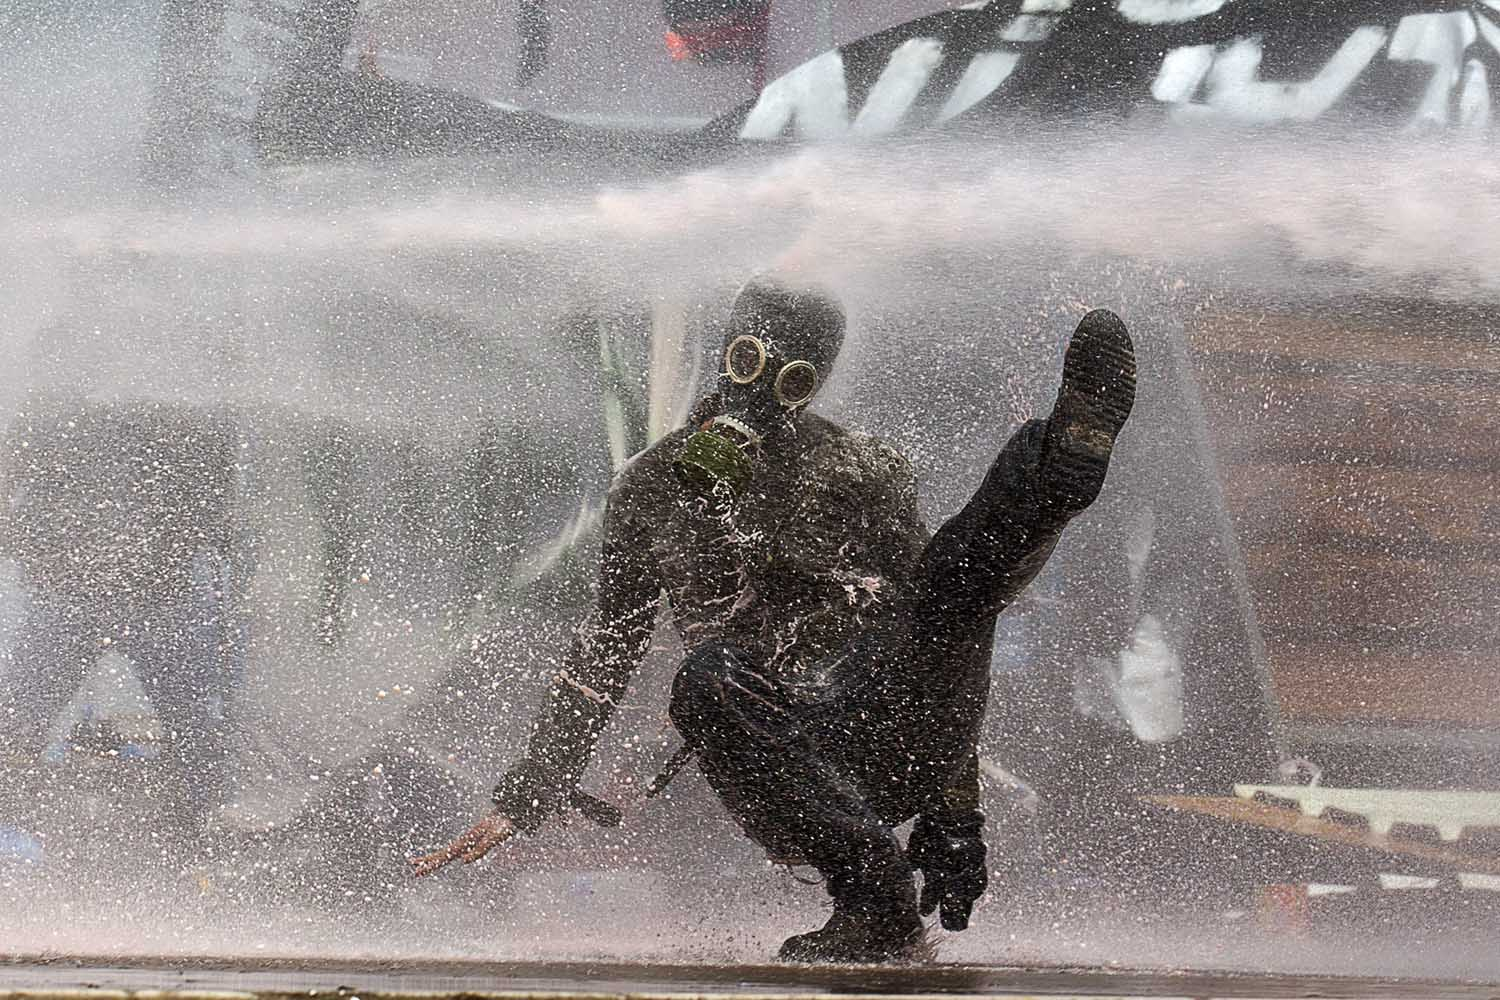 June 11, 2013. A protestor is hit by pressurized water sprayed from a riot police water cannon during clashes Taksim Square Istanbul, Turkey.